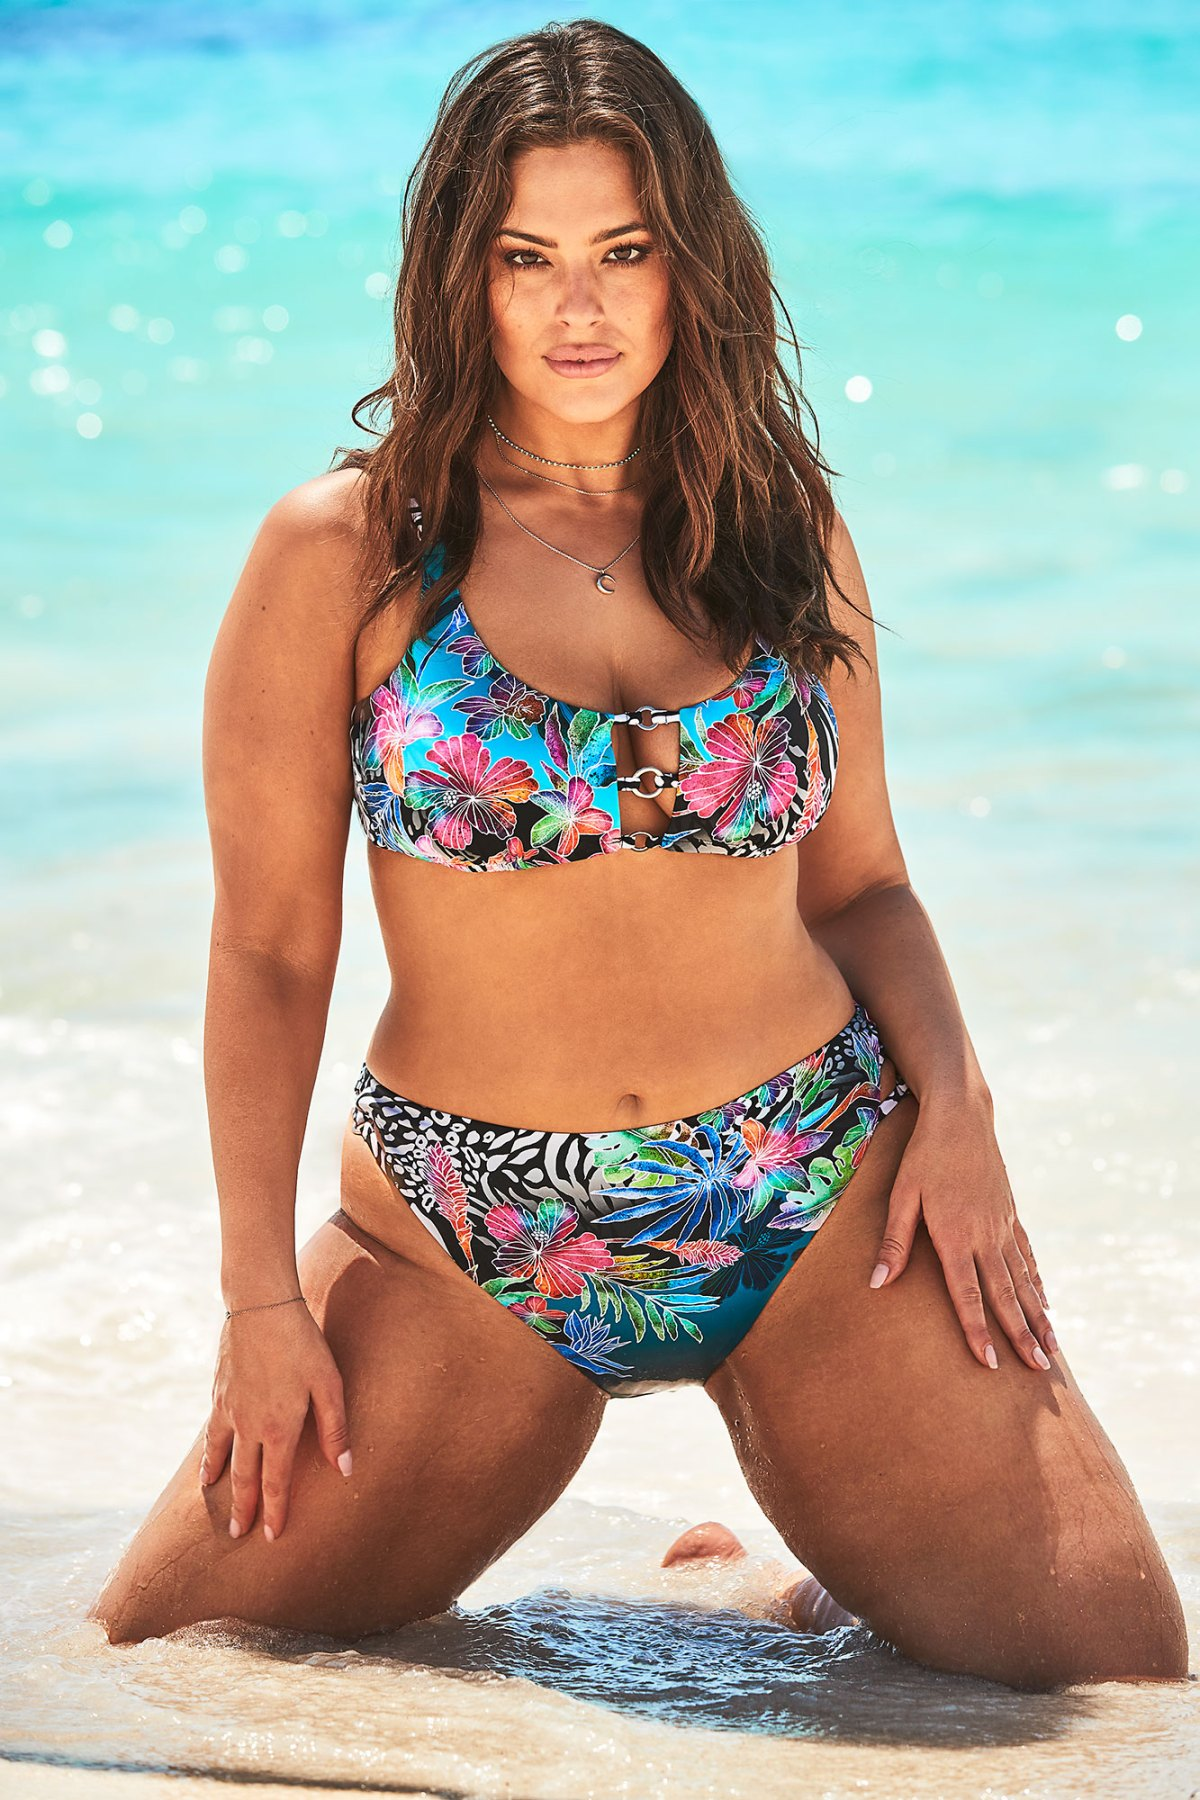 51364af4c3 Ashley Graham x Swimsuits For All Summer 2019 Campaign: Pics